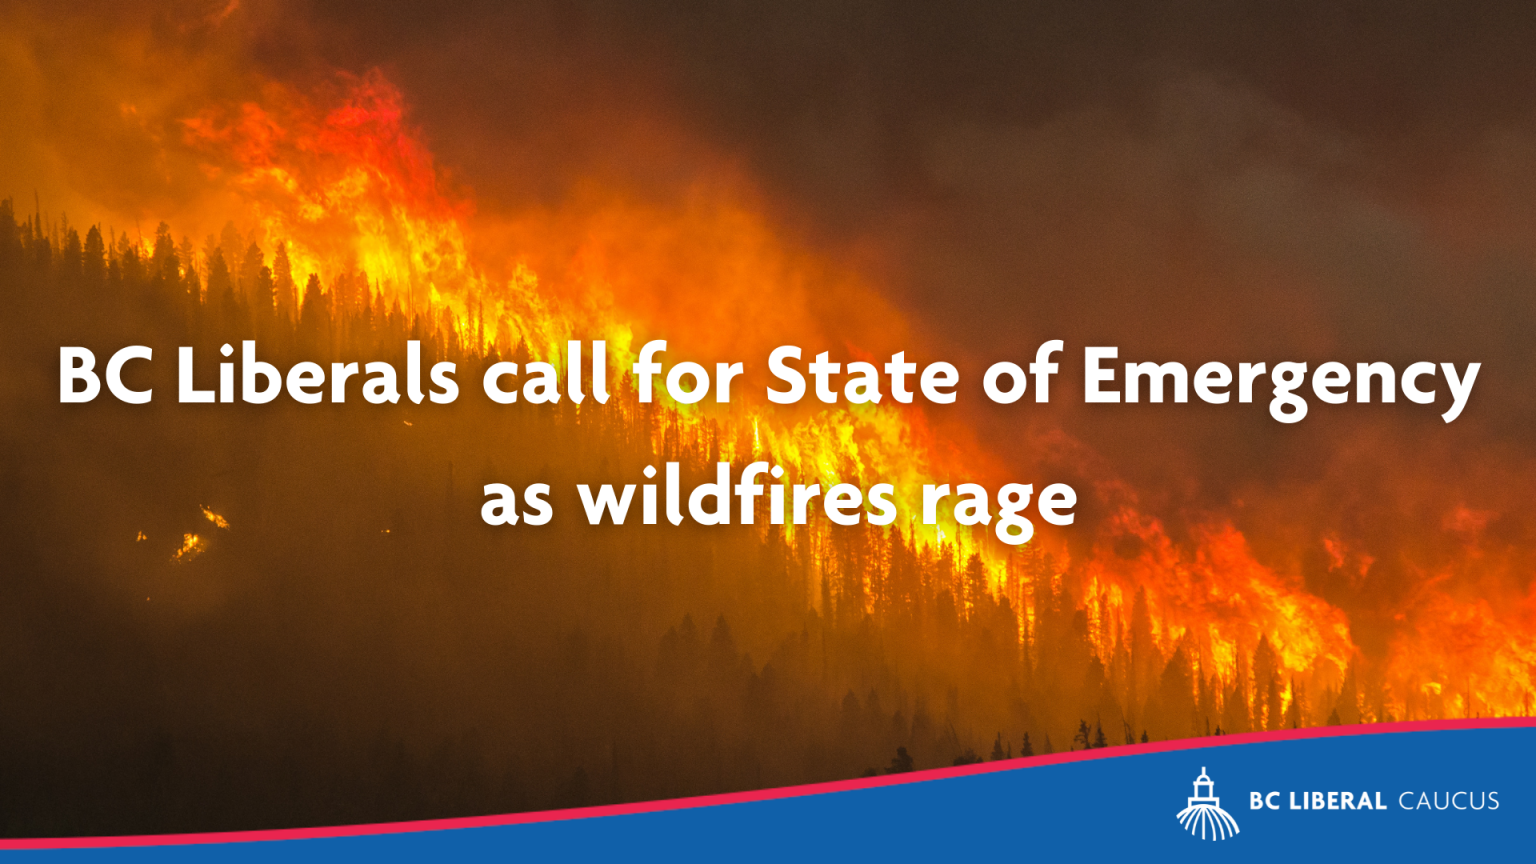 BC Liberals call for State of Emergency as wildfires rage